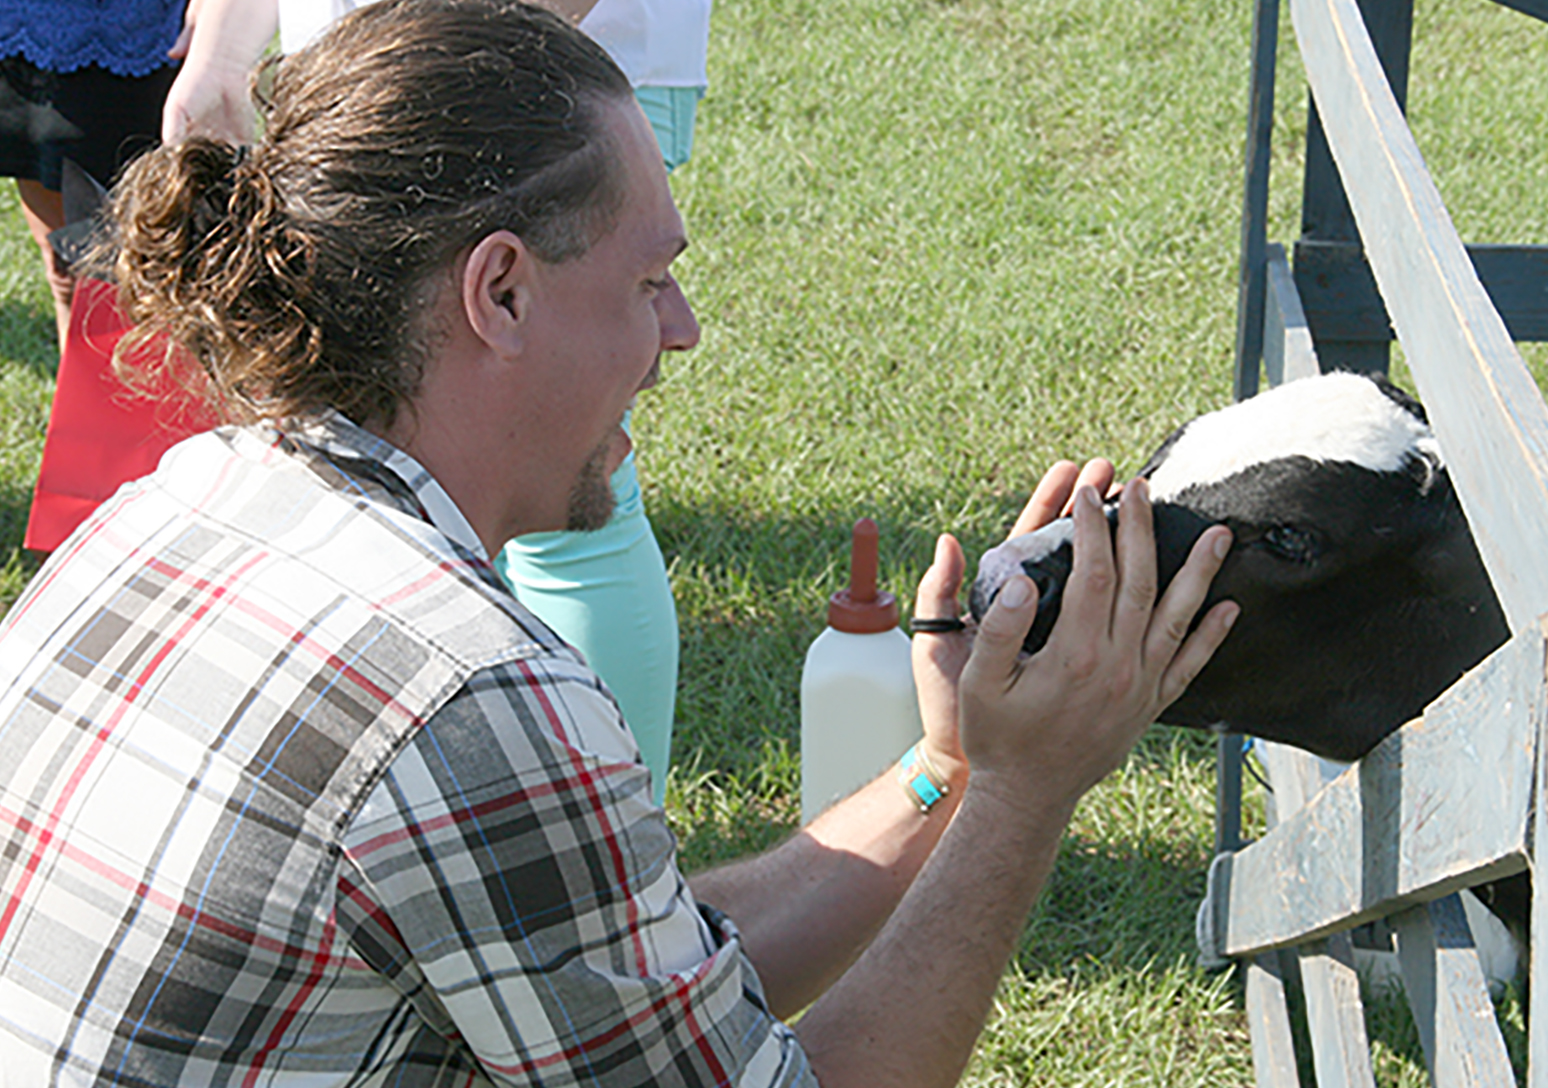 Alexander Bucksch talks with a cow during the New Faculty Tour on Thursday, August 4, at the UGA Tifton Campus.